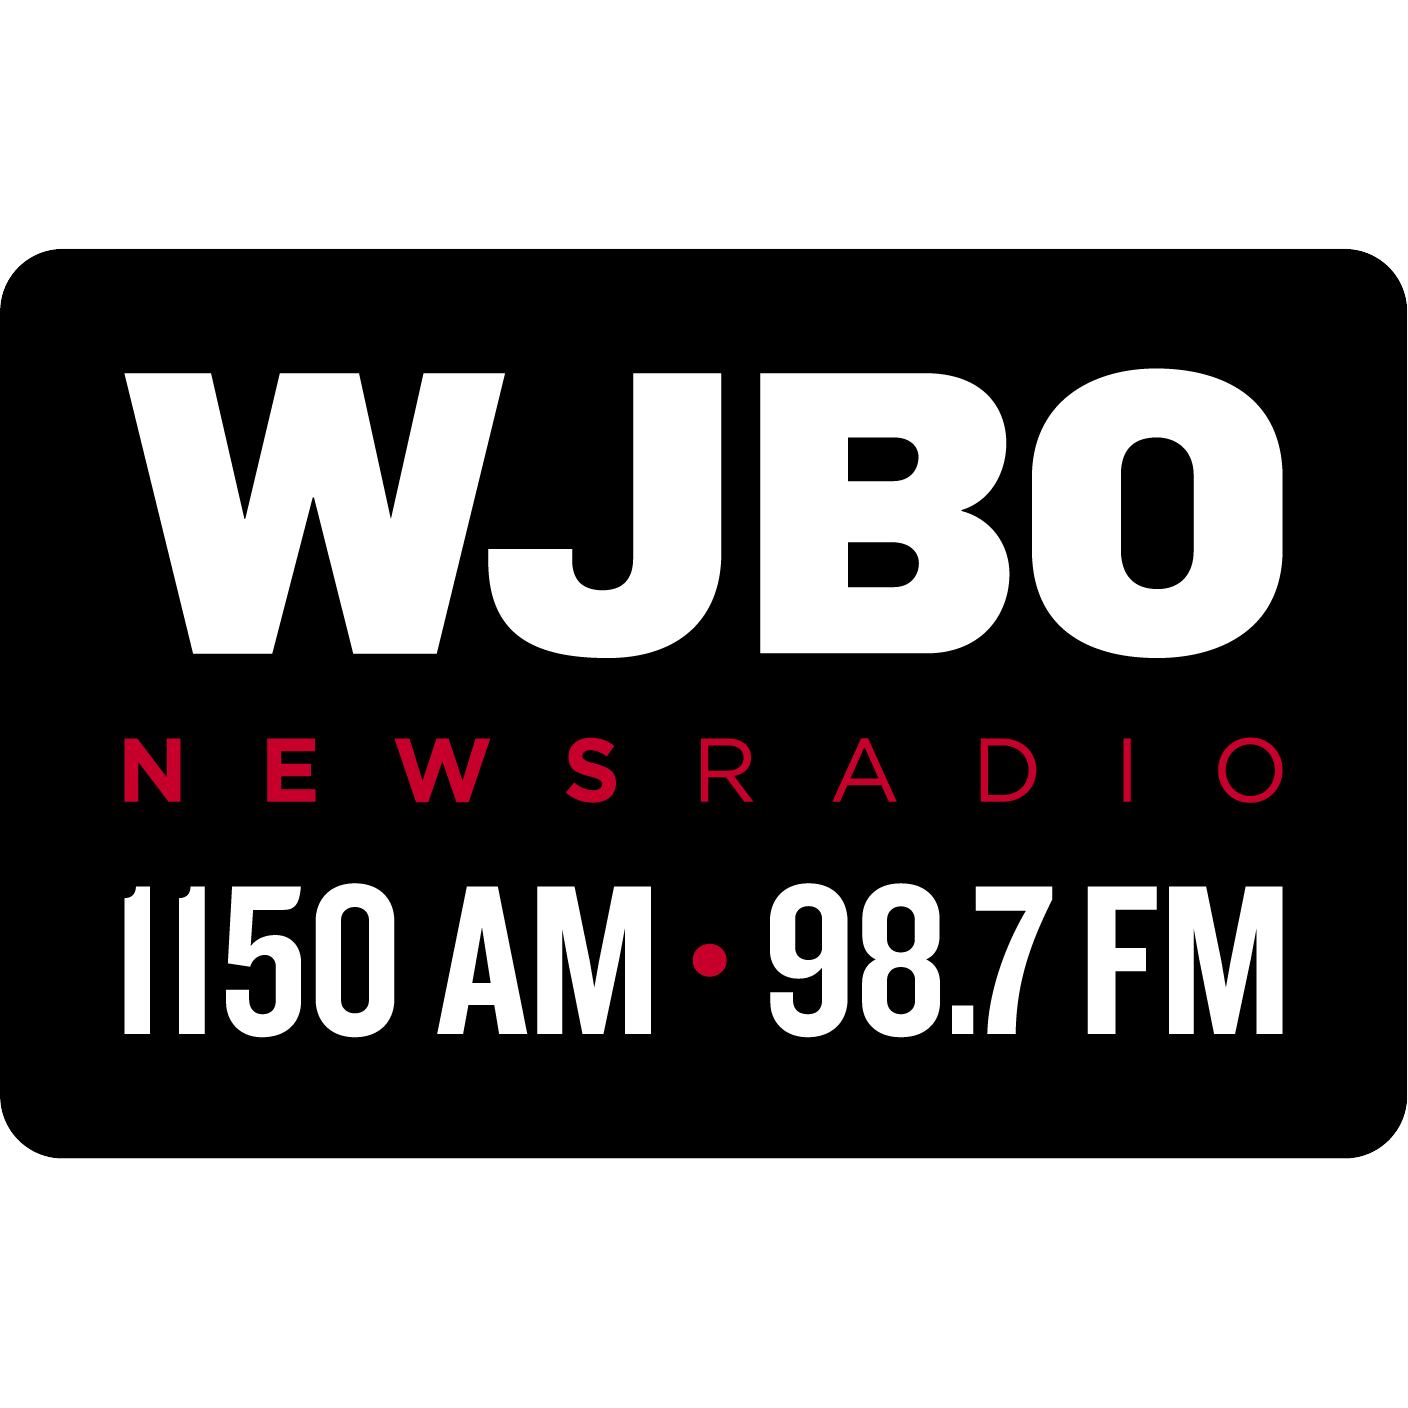 WJBO Newsradio 1150AM & 98.7FM